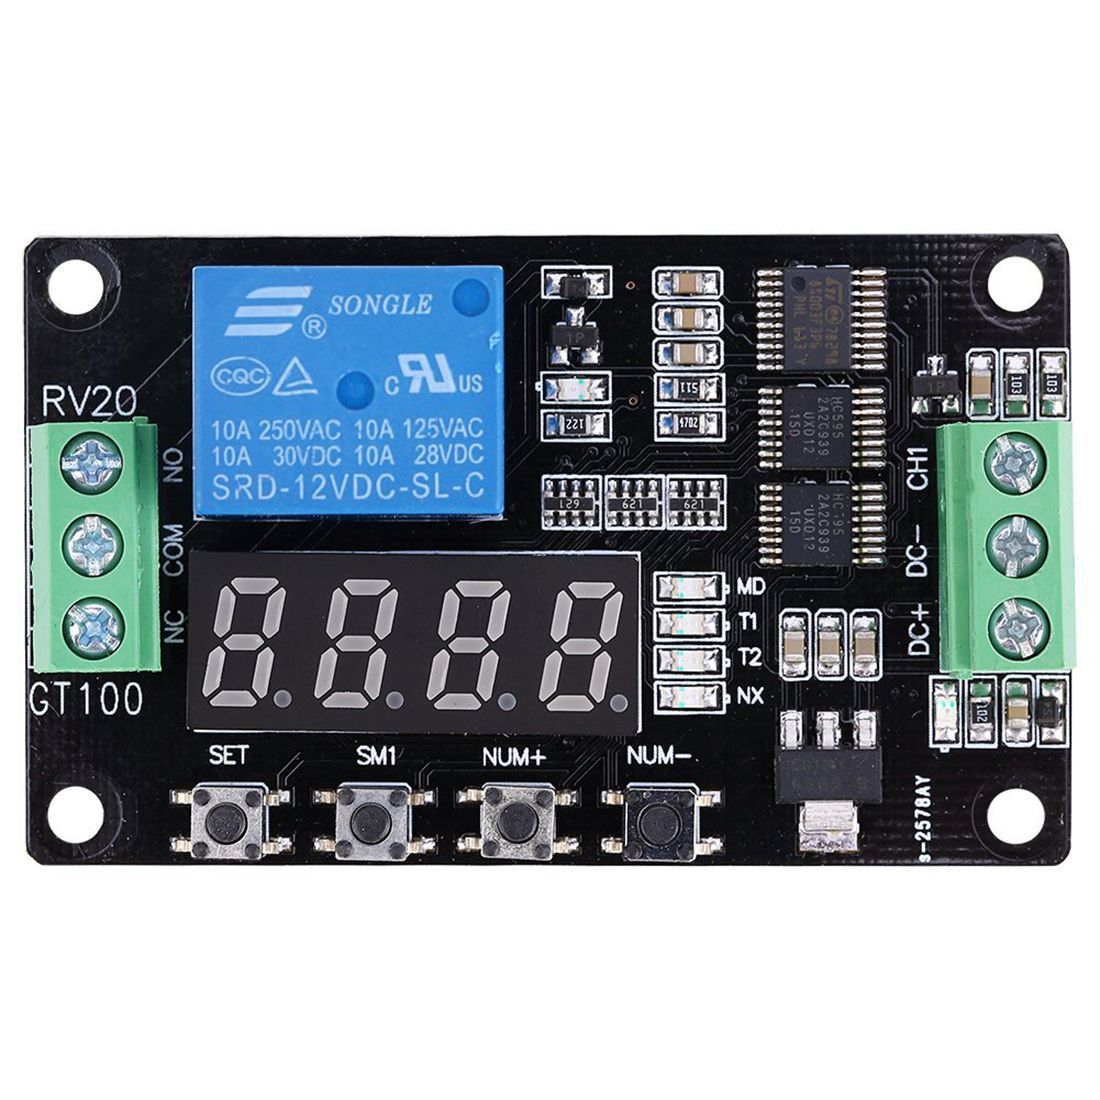 Multifunction Relay Cycle Timer Module,Self-lock Relay PLC Cycle Timer Module Switch Board Power Switch Home Automation Delay 12v led display digital programmable timer timing relay switch module stable performance self lock board